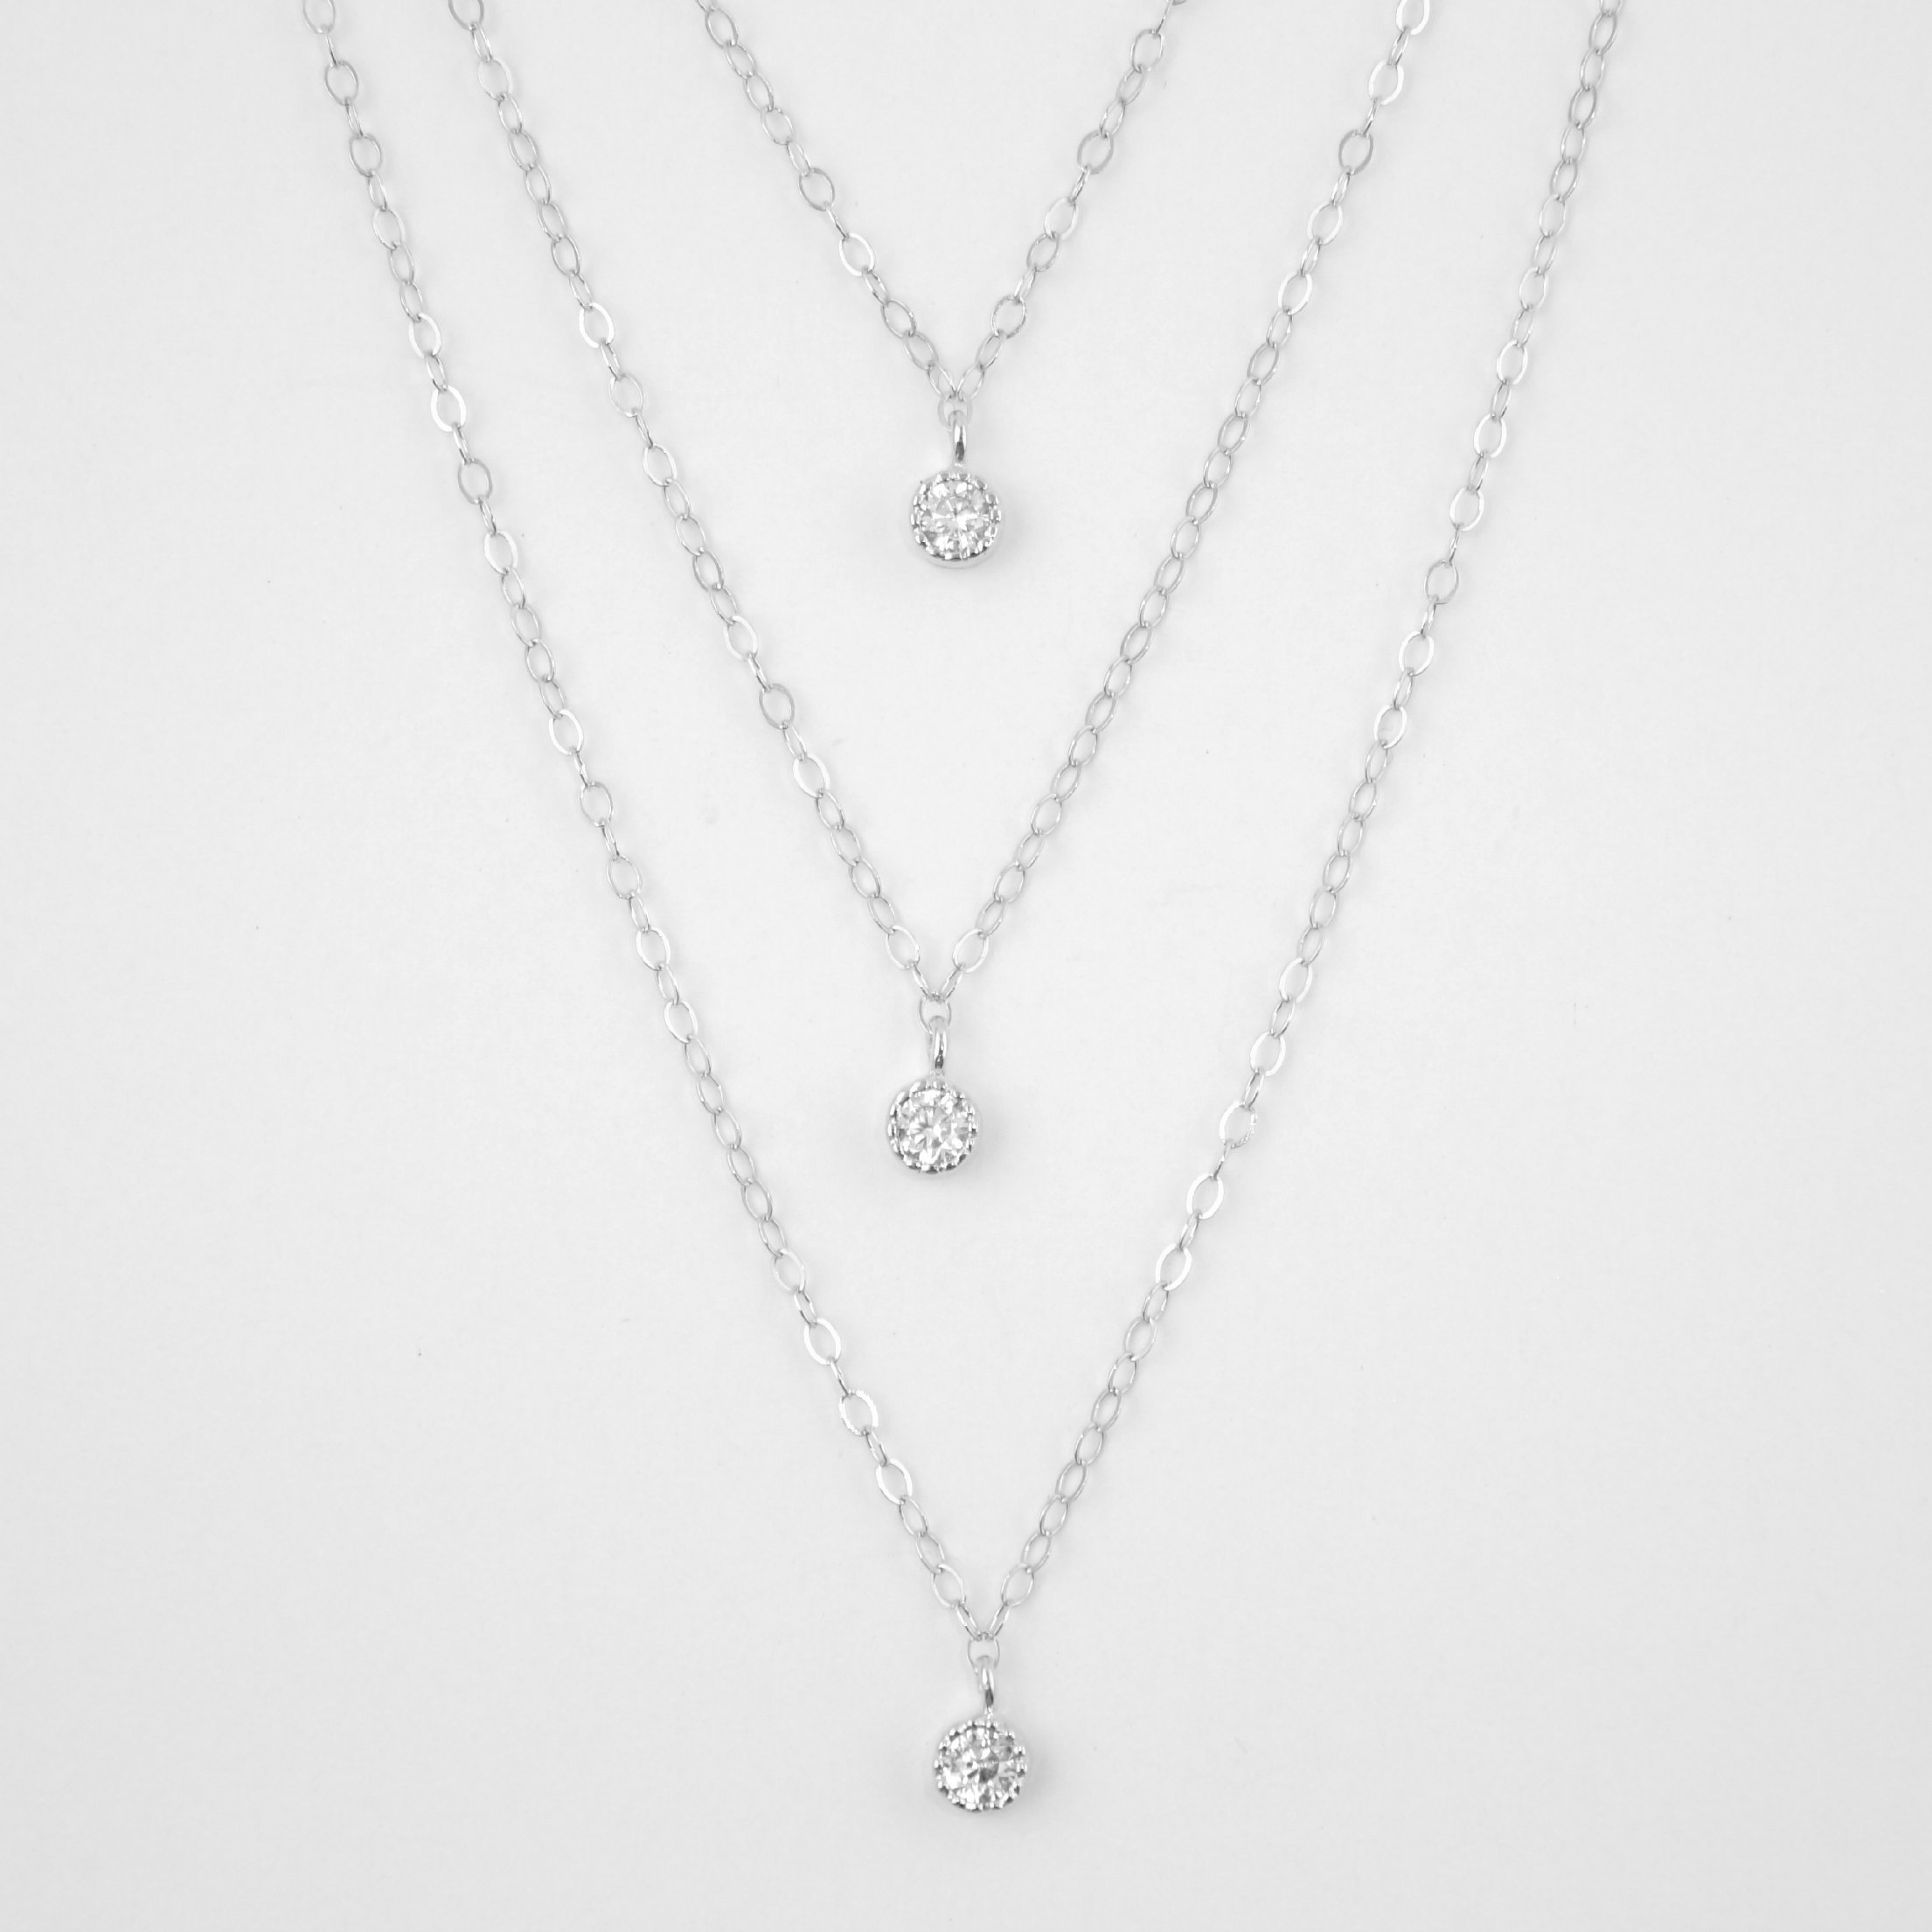 Triple Layered Necklace Set